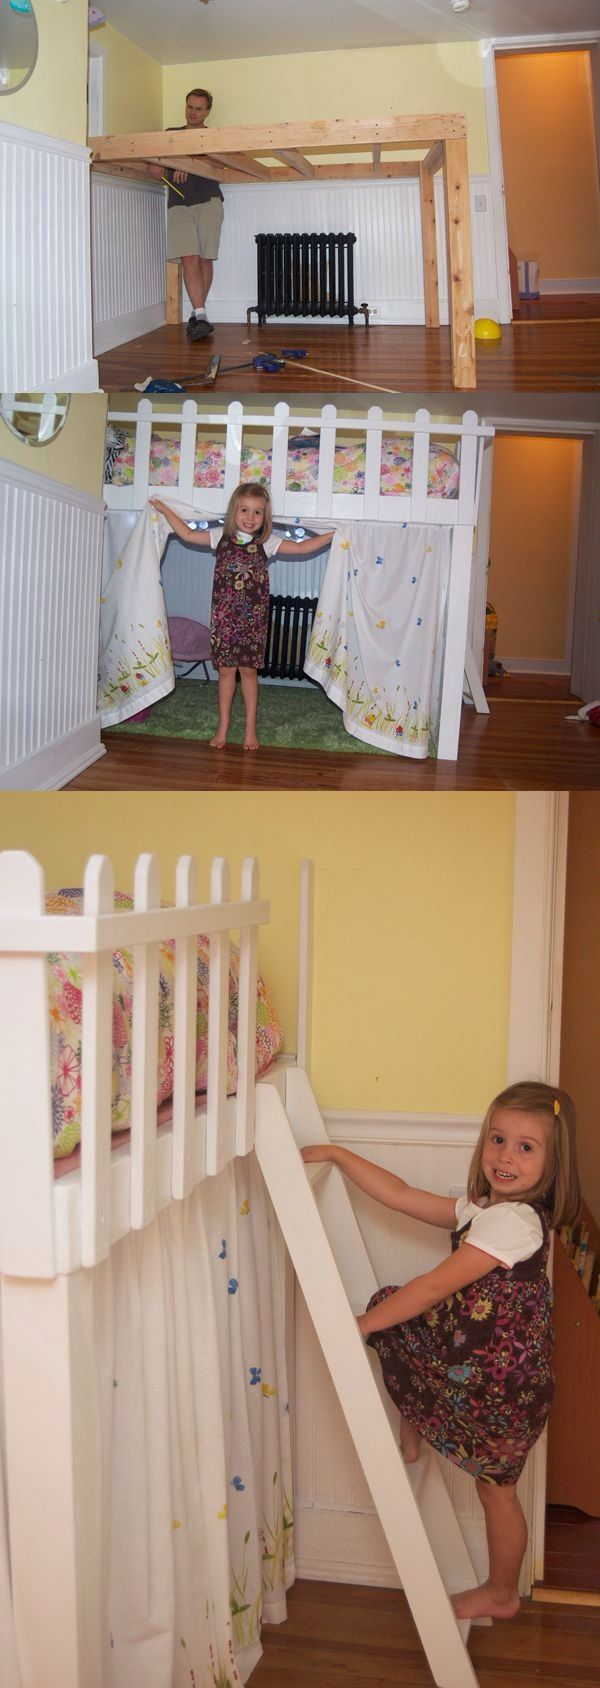 I love this I will have to do this with my kids hope everyone starts doing this for their kids could turn it into a little boy hideout